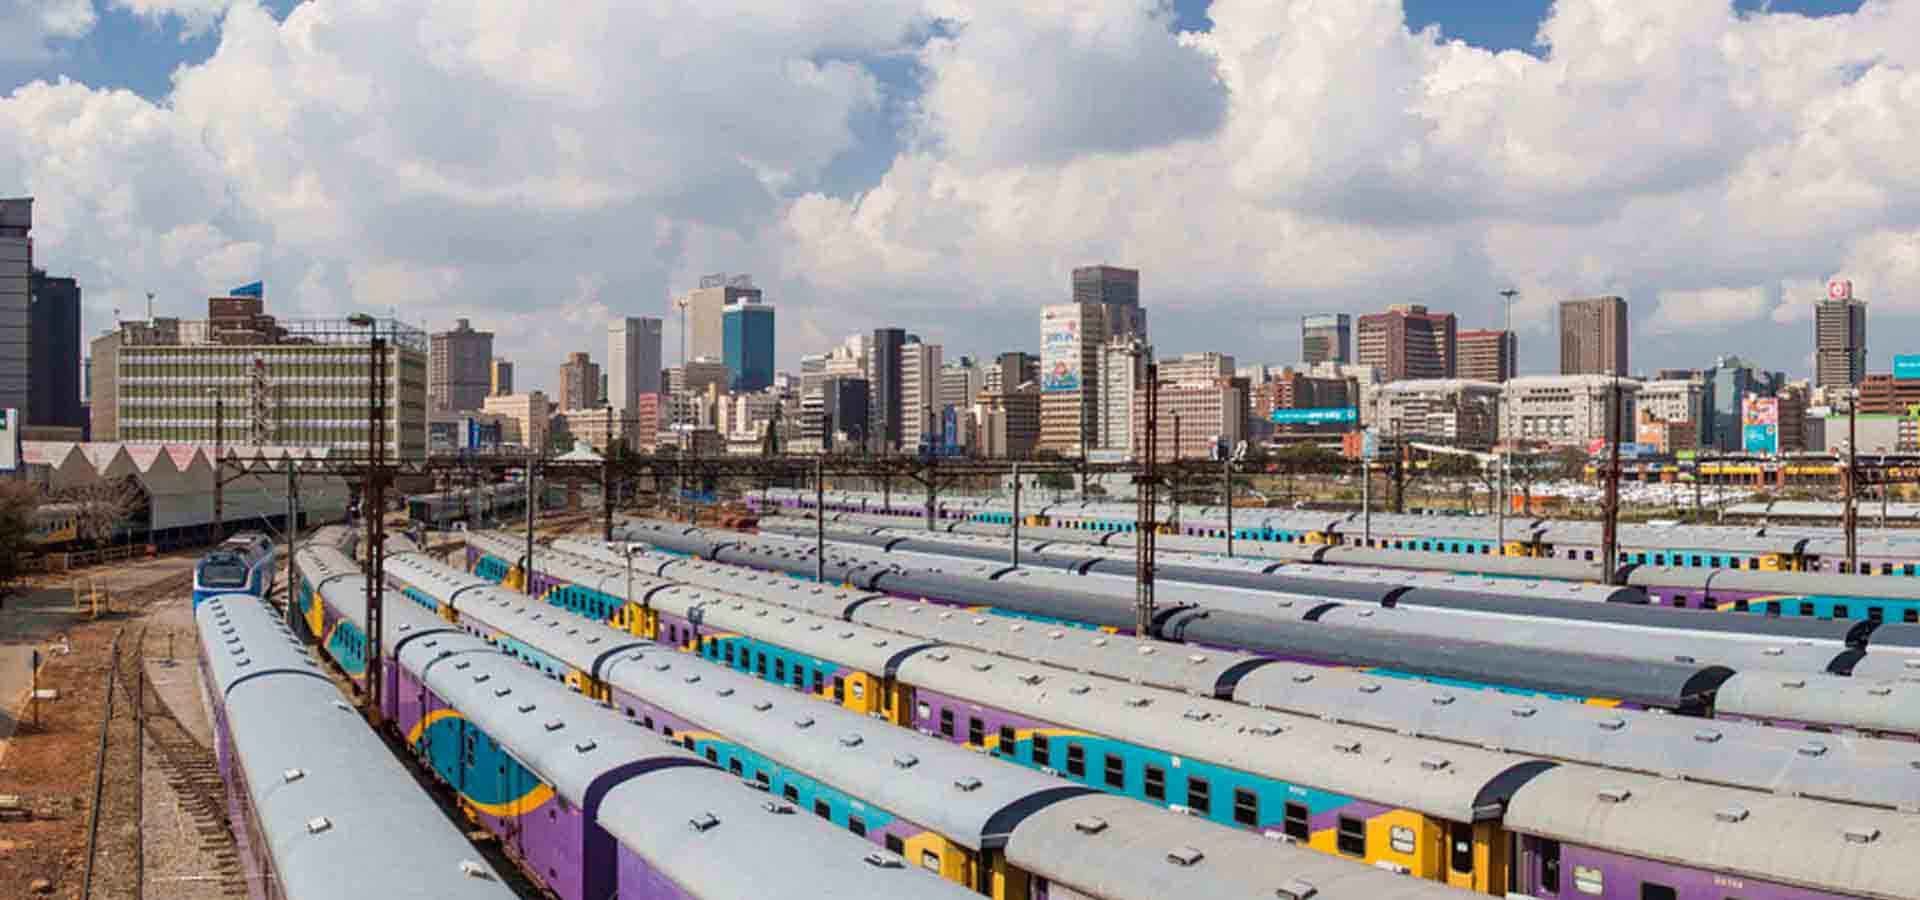 Johannesburg Park Station and Trains